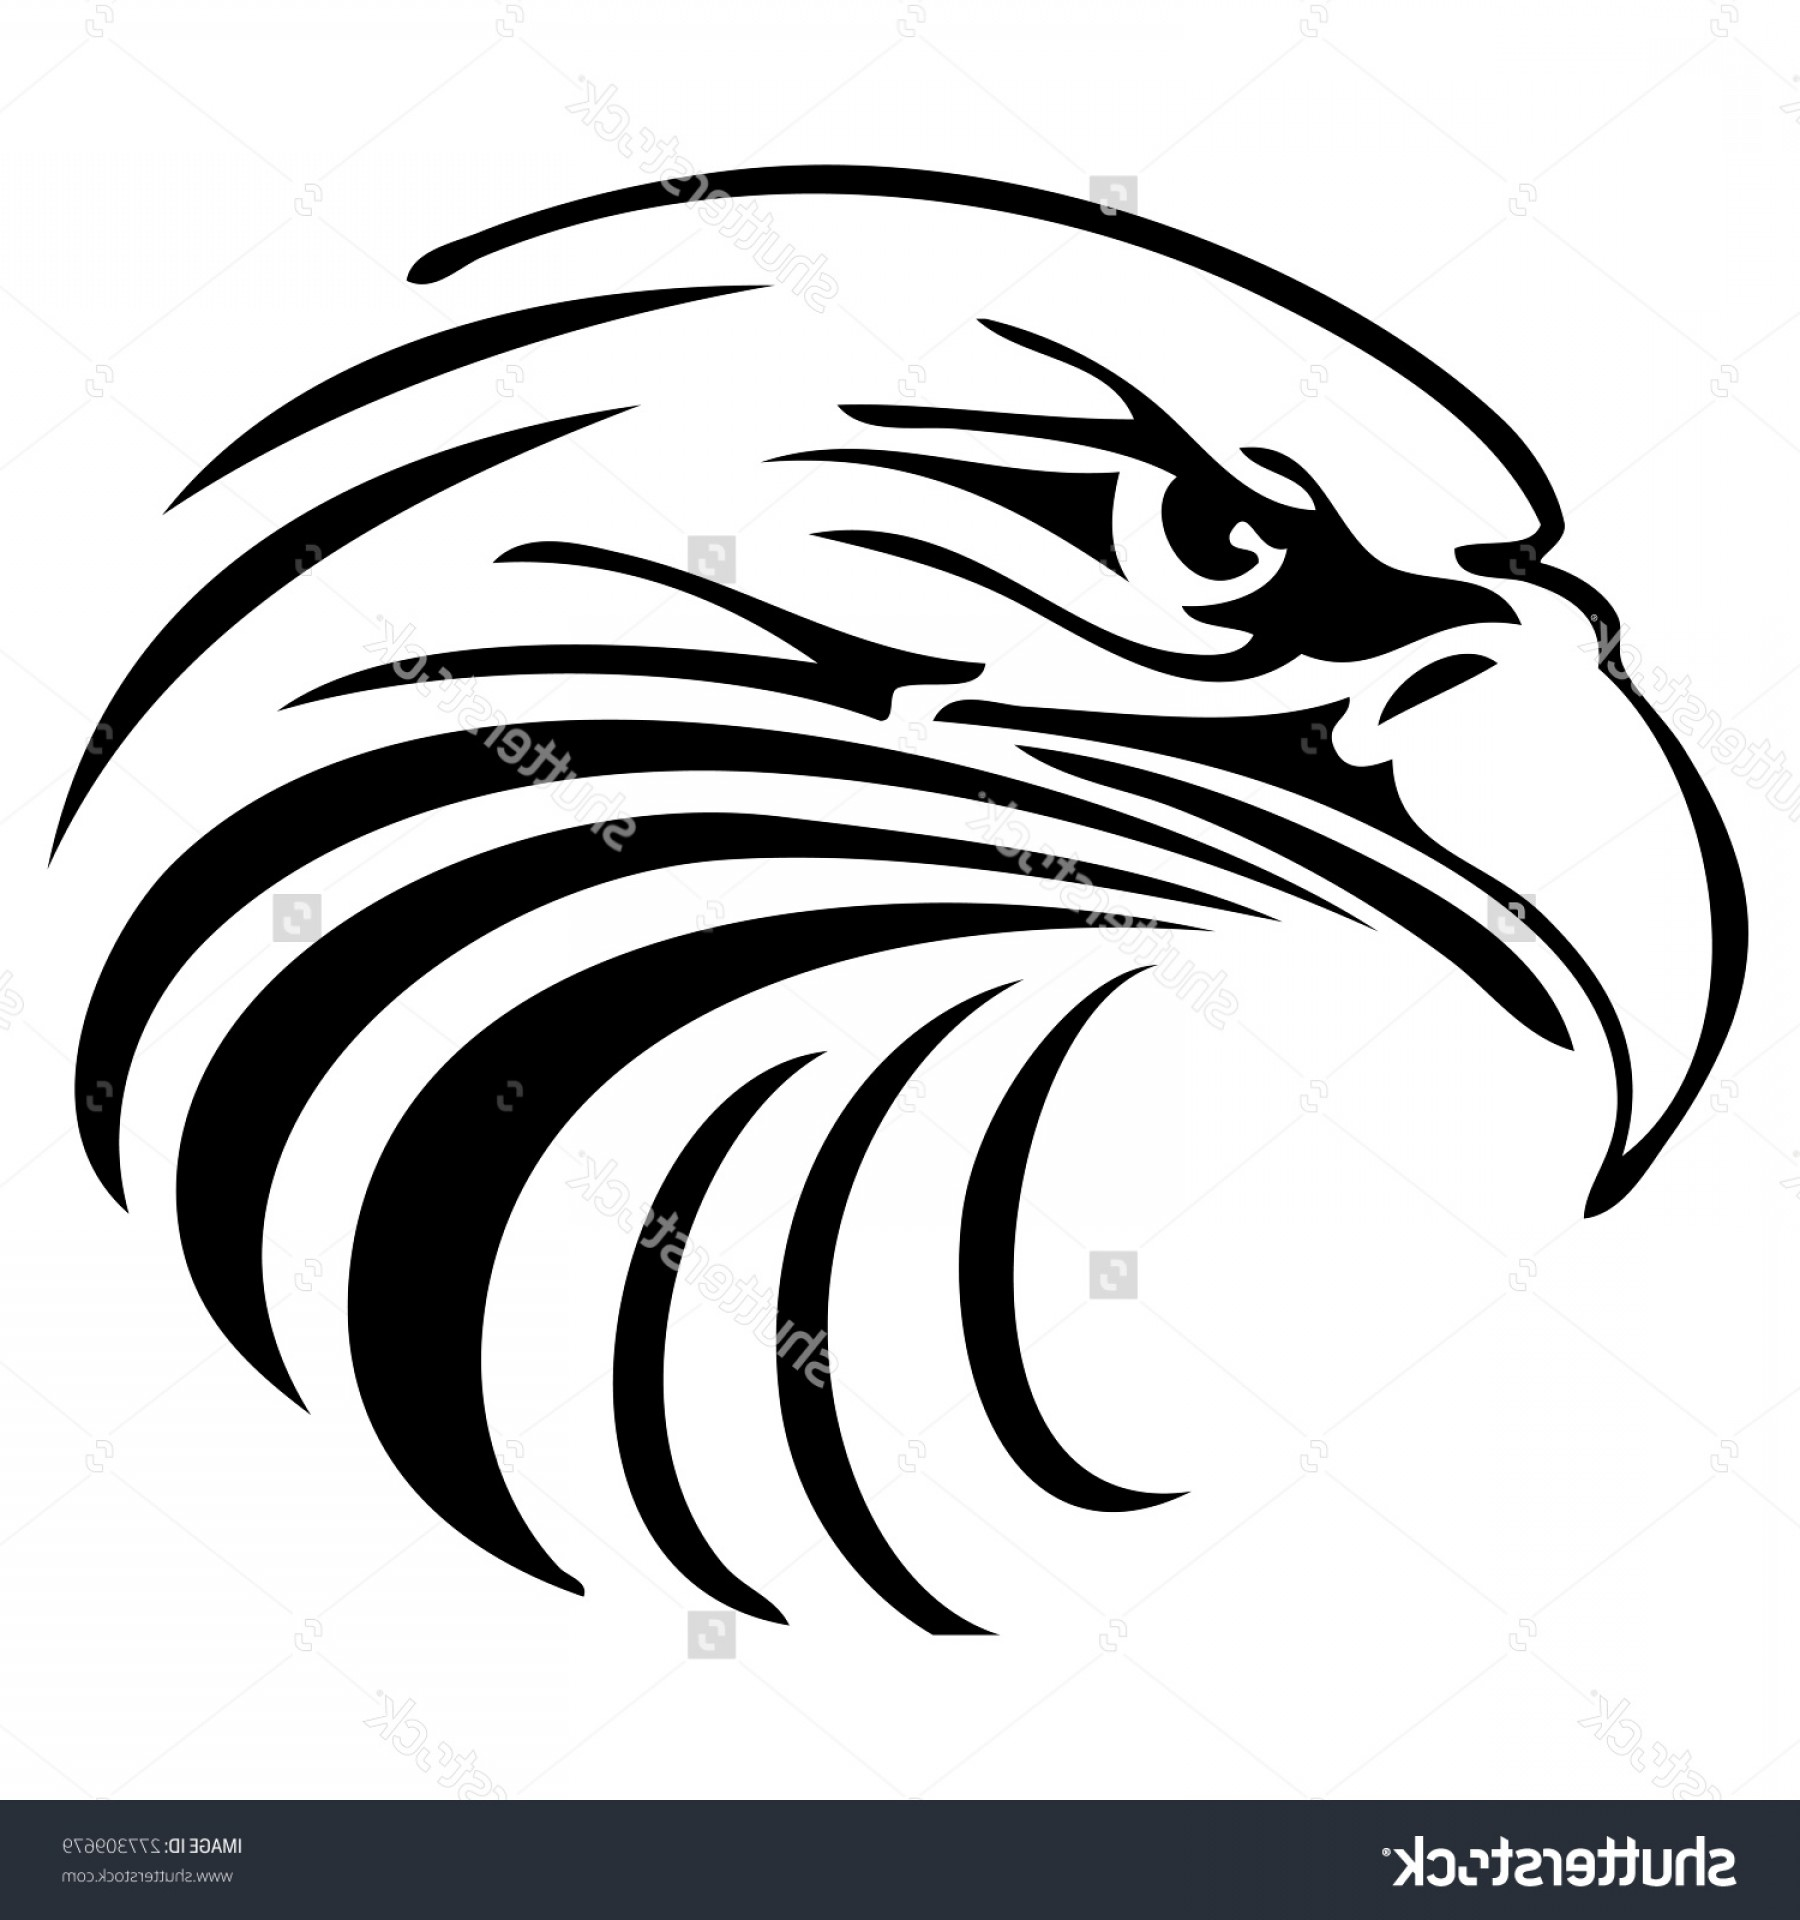 Eagle head clipart black and white graphic free library Eagle Head Clipart Black And White Vector | GeekChicPro graphic free library